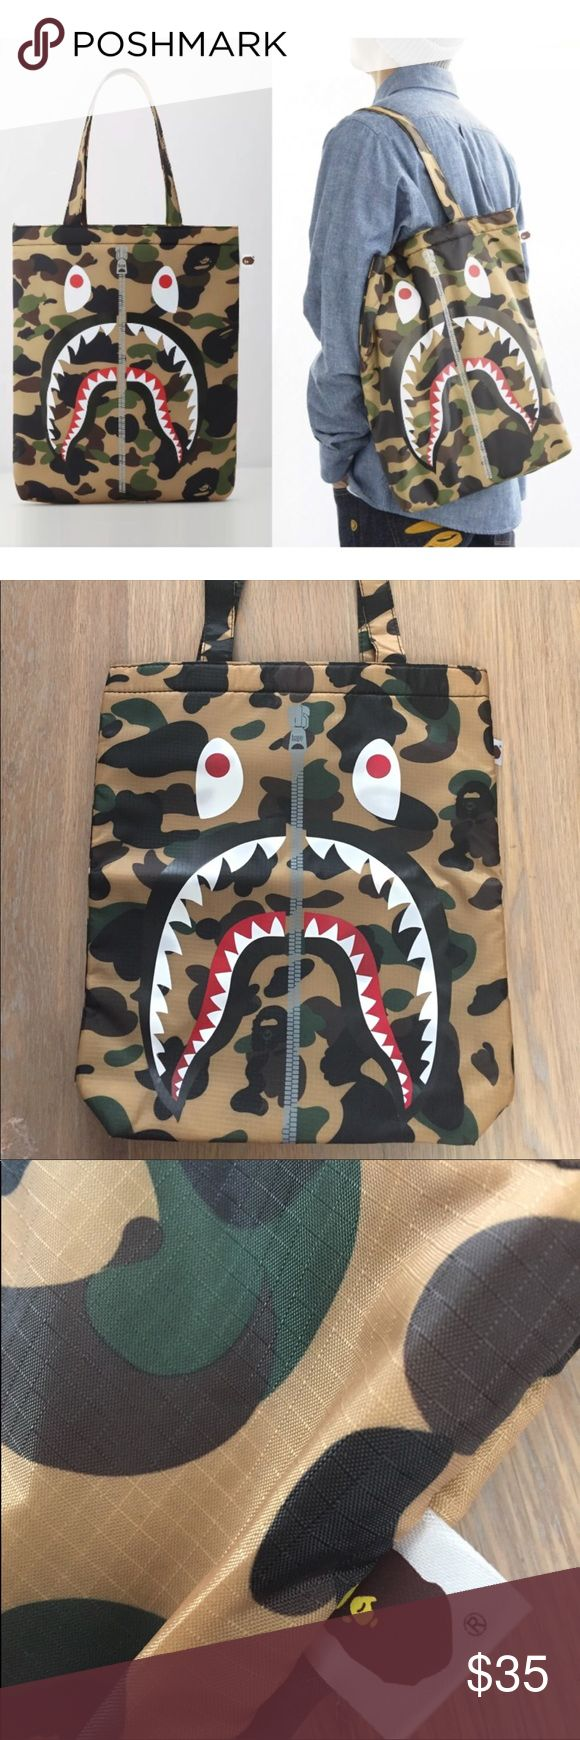 "A Bathing Ape BAPE Shark Camo Padded Tote Bag Brand new without tags / bag only / no magazine Authentic from E Mook Japan collaboration with BAPE A small tote / shoulder bag Small size L 13"" x H 14.5"" x W 3"" (Model is about 5'7 in pic) Tan brown camouflage printed grid microfiber Padded body  Please do not compare quality with A Bathing Ape / BAPE store because this is a magazine appendix Bape Bags Totes"